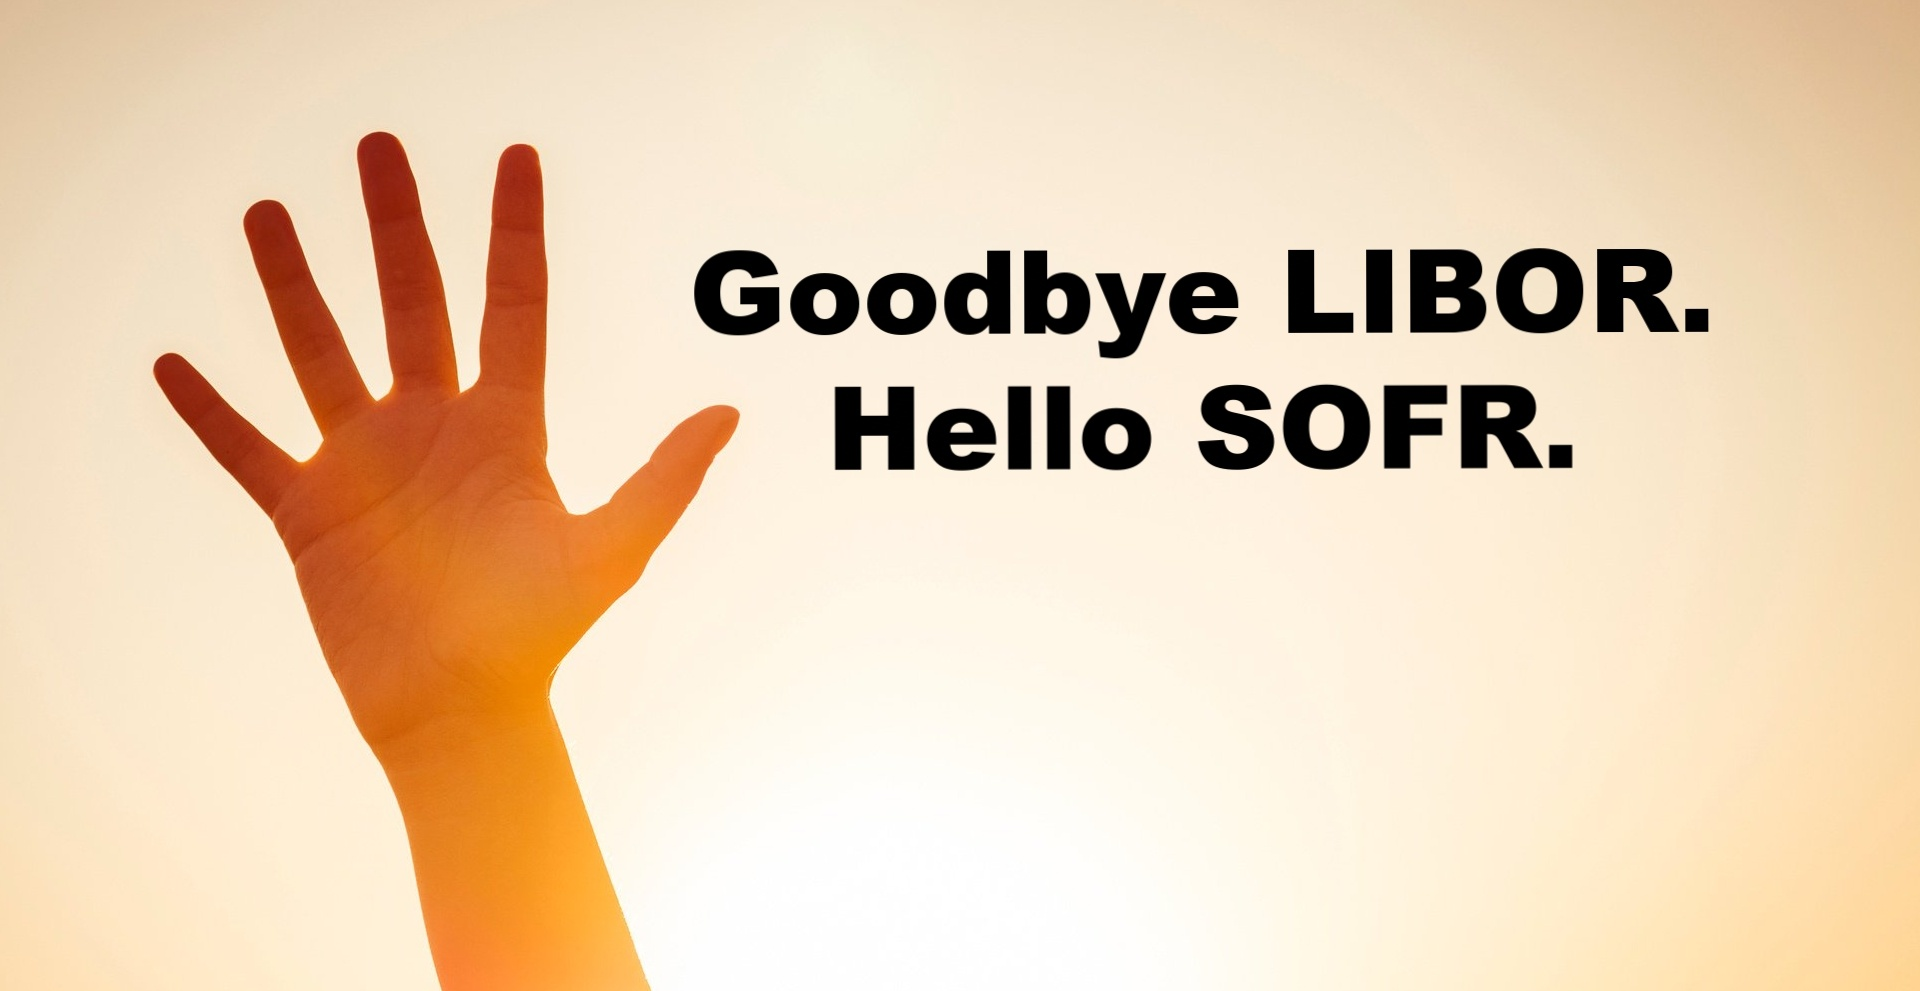 Goodbye LIBOR. Hello SOFR.